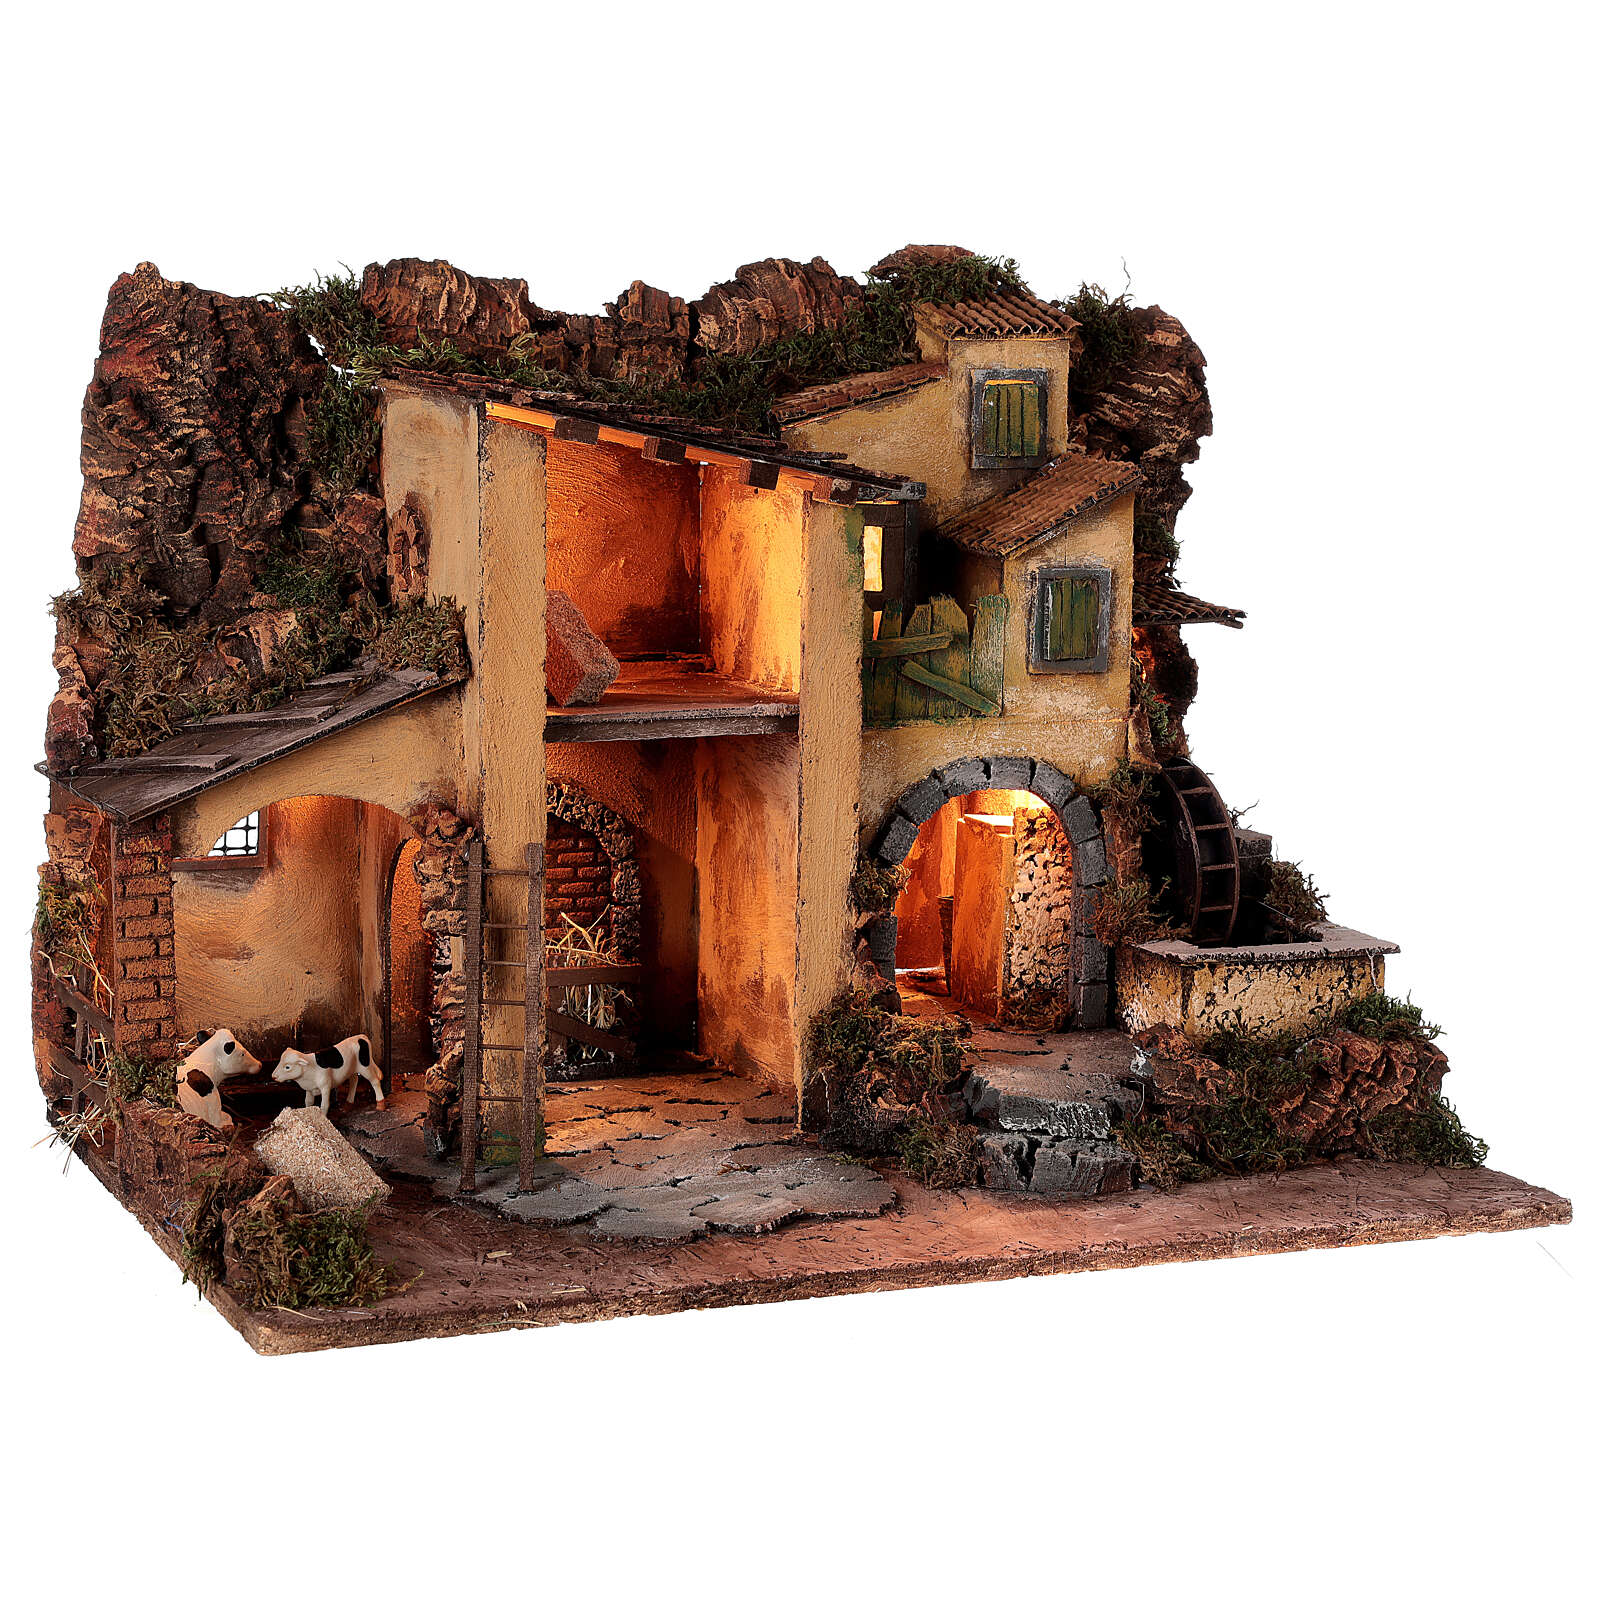 Setting 1700 with mill Neapolitan Nativity scene 40x60x40 for statues 10 cm 4